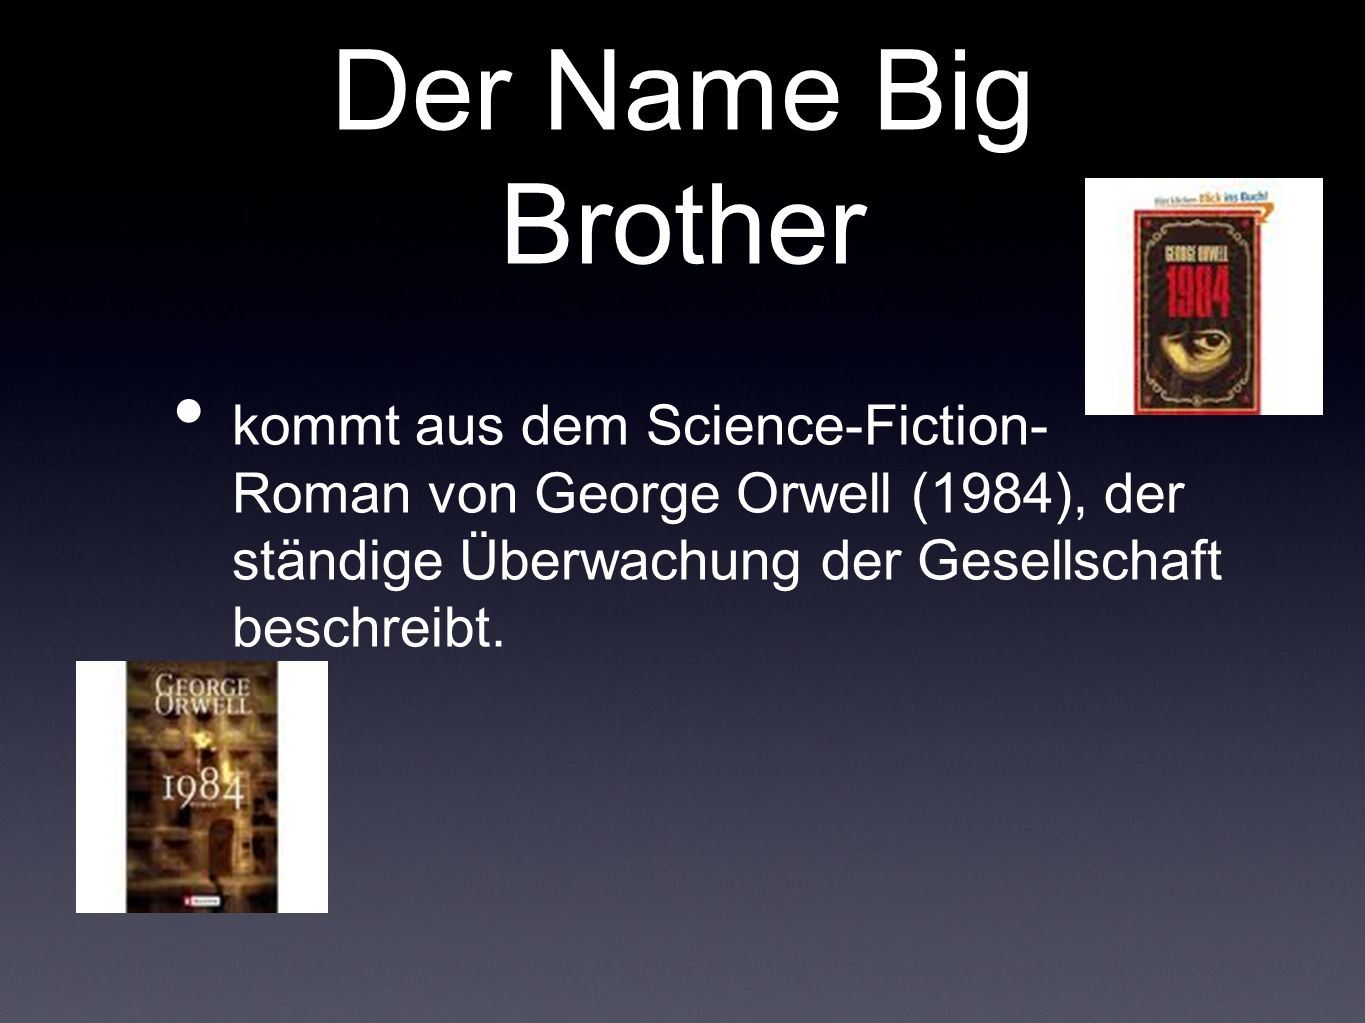 Der Name Big Brother kommt aus dem Science-Fiction- Roman von George Orwell (1984), der ständige Überwachung der Gesellschaft beschreibt.